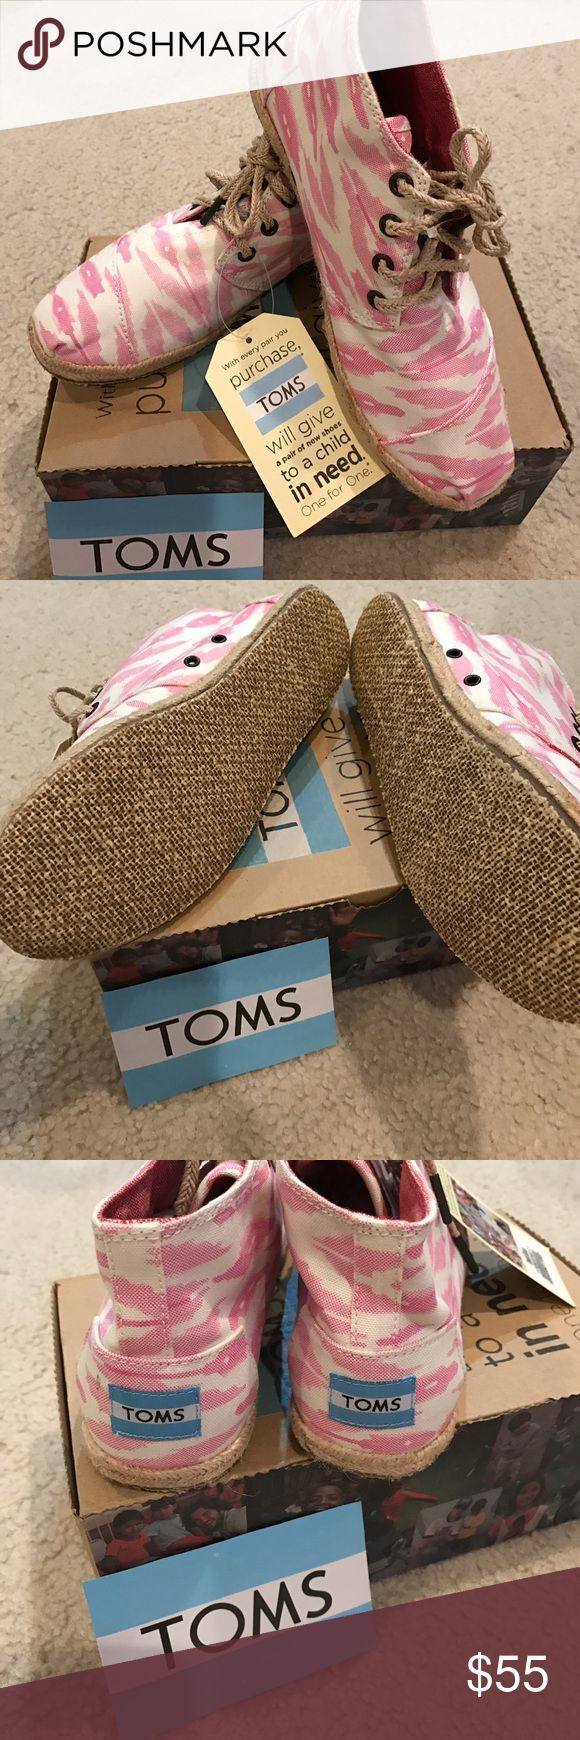 Brand new TOMS pink and white Brand new TOMS in pink and white. Size 7., will fit up to 7.5. Jute rope detail and laces. Super cute and chic. Includes original box and sticker. No Trades or holds. TOMS Shoes